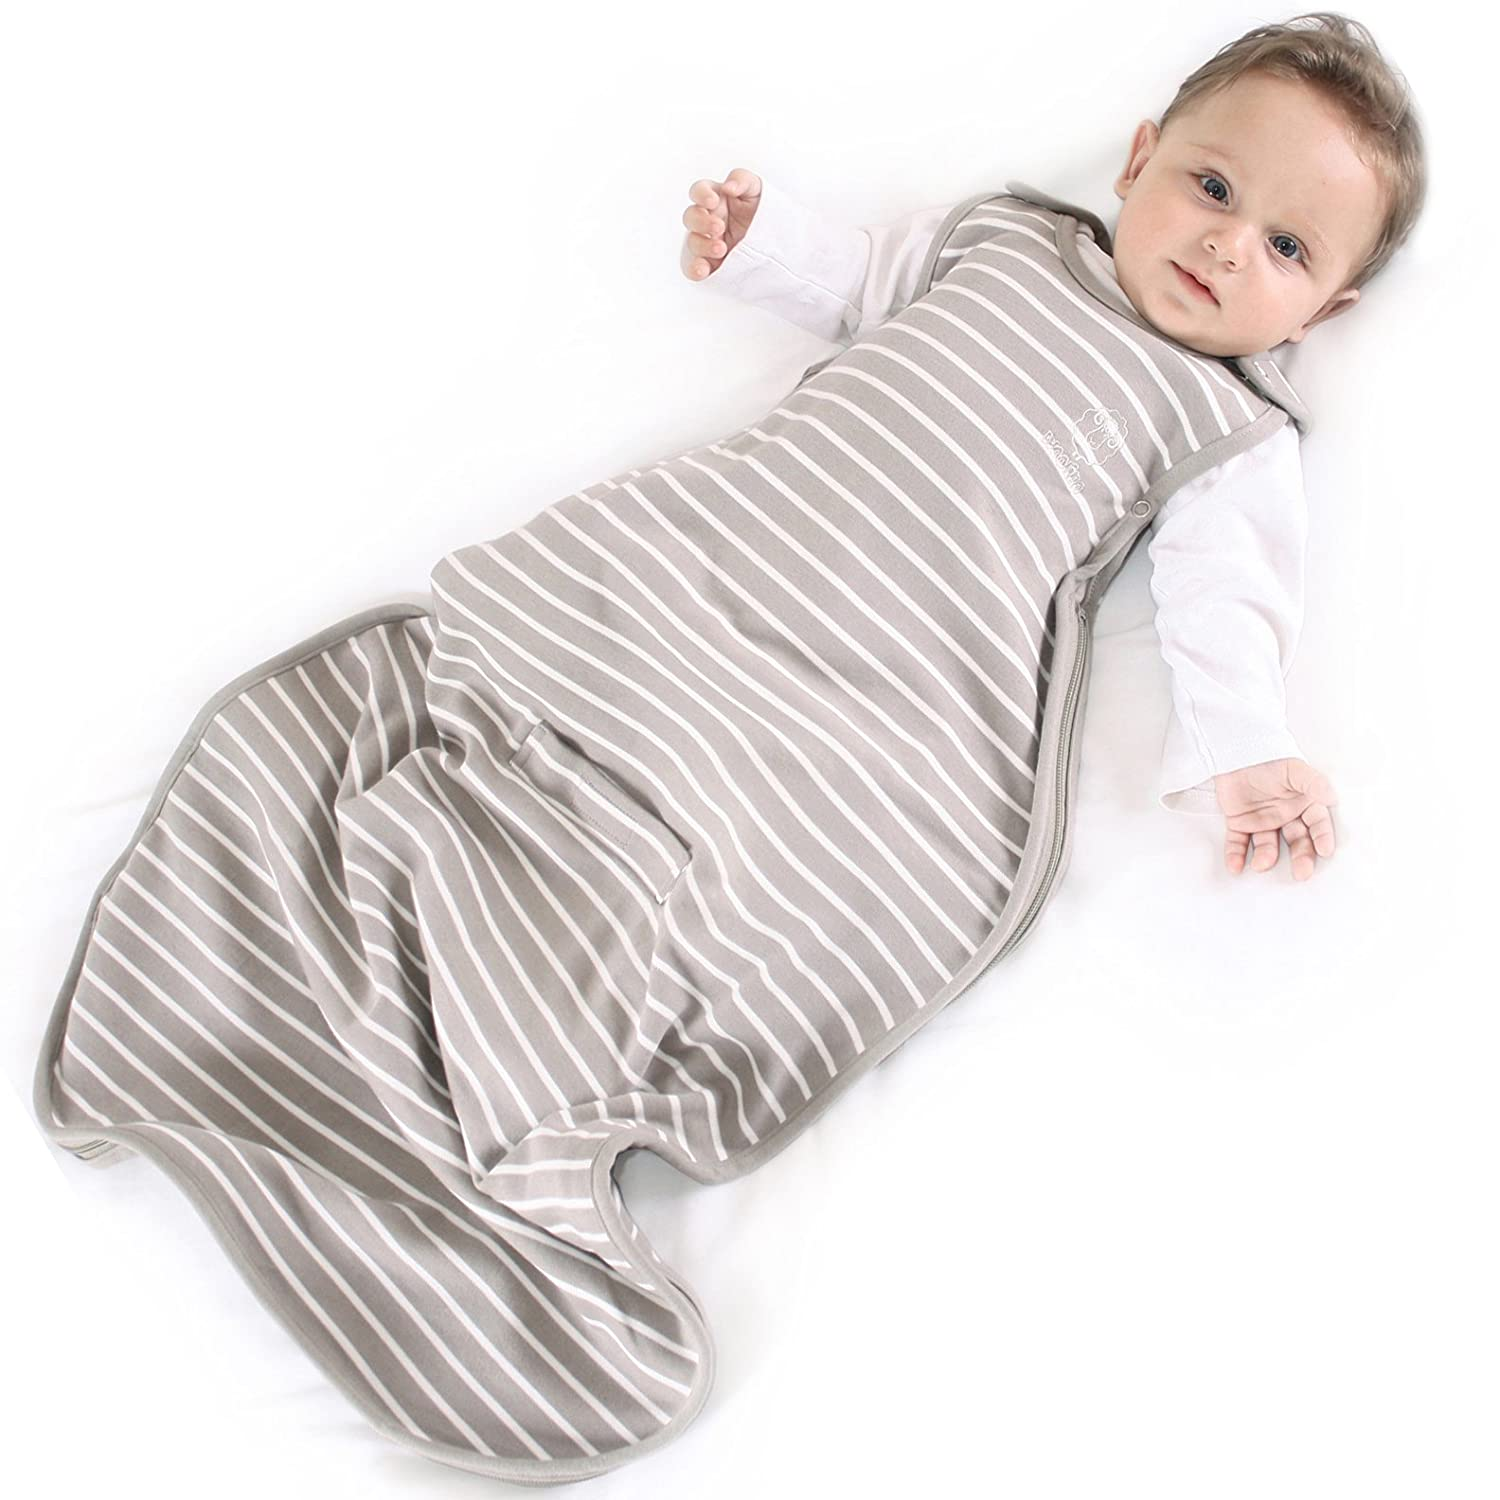 Woolino Baby Sleeping Sack - 4 Season - Merino Wool - 2 Month - 2 Year - Earth